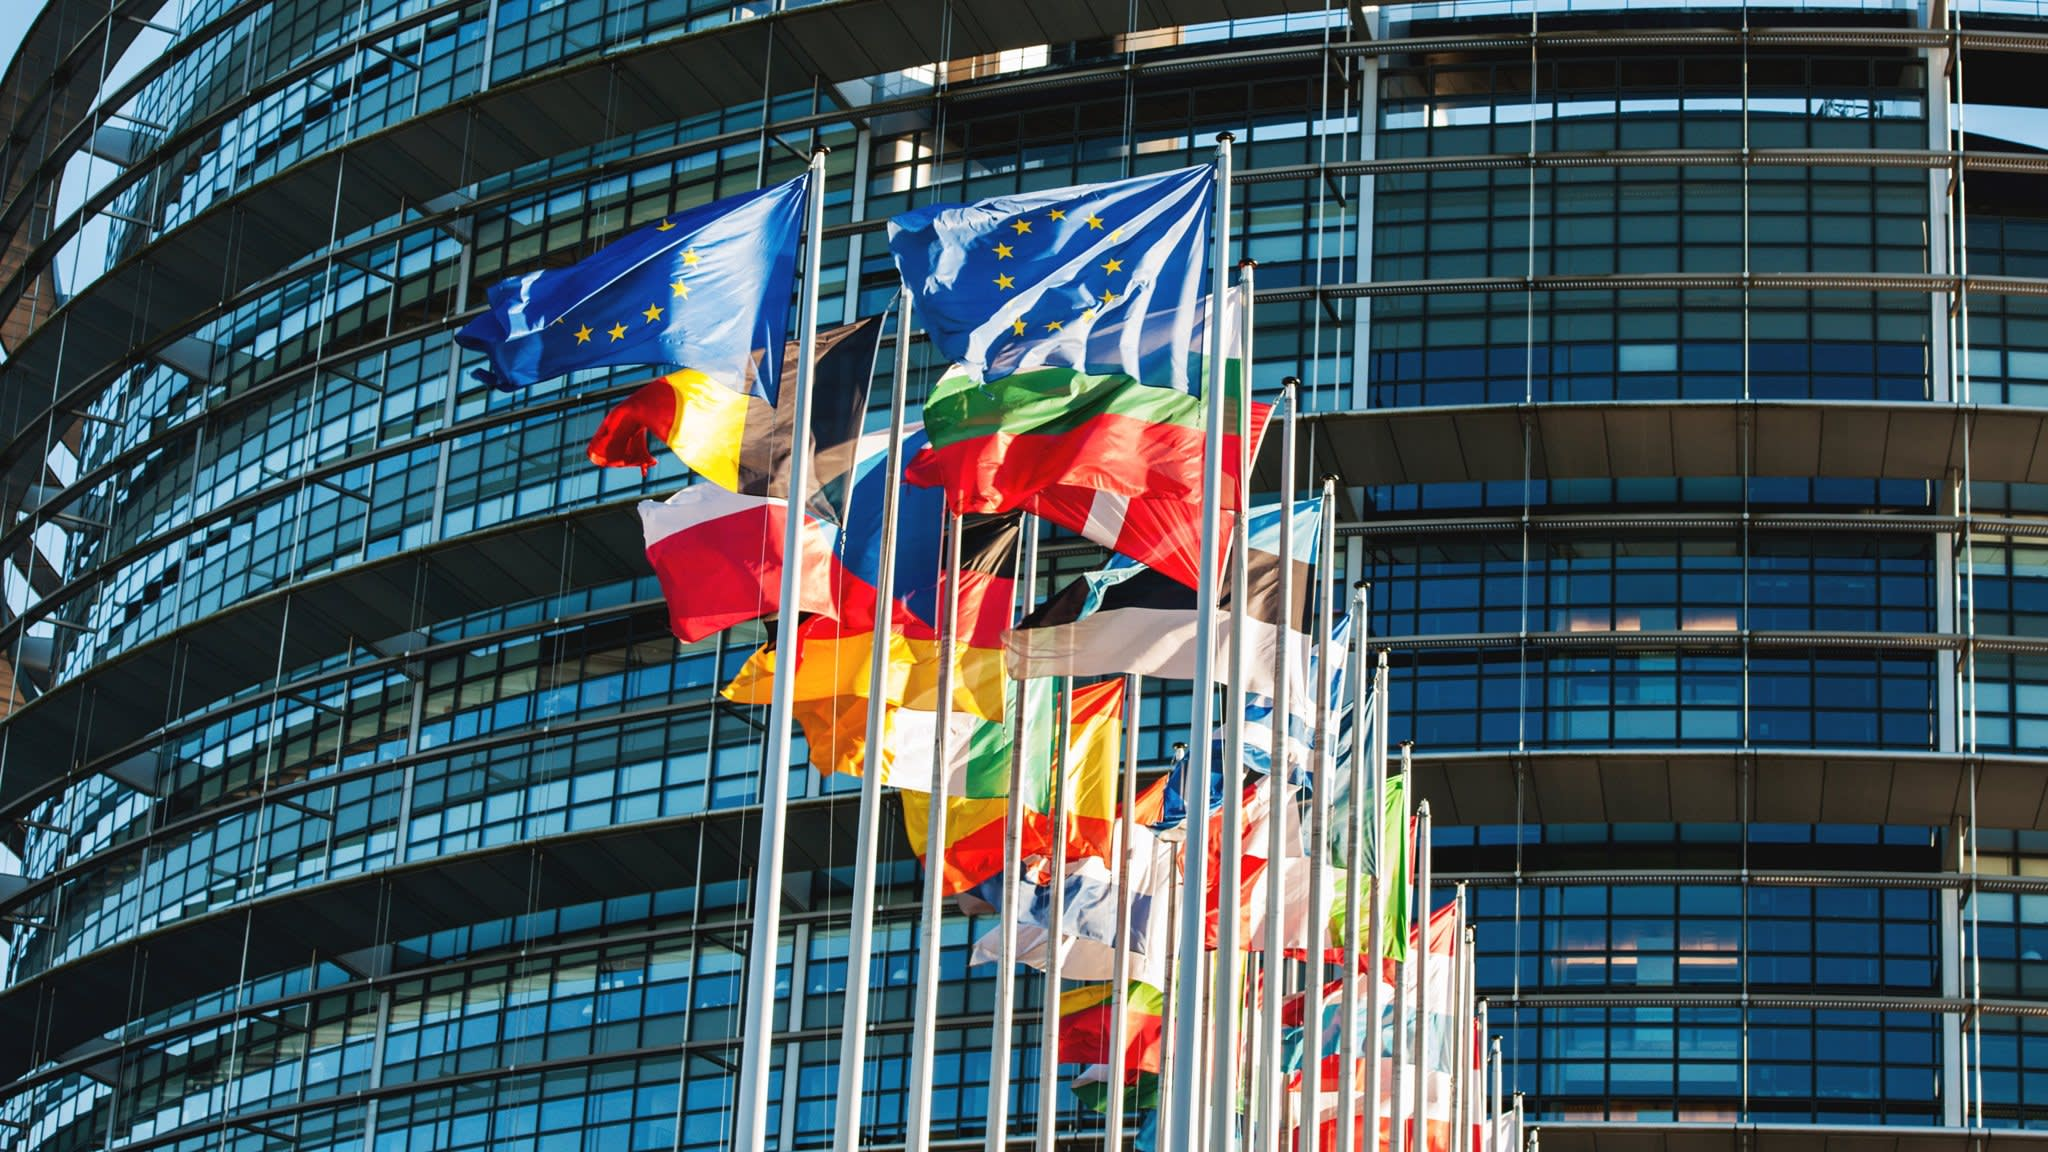 Euroclear to move holding company from London to Brussels